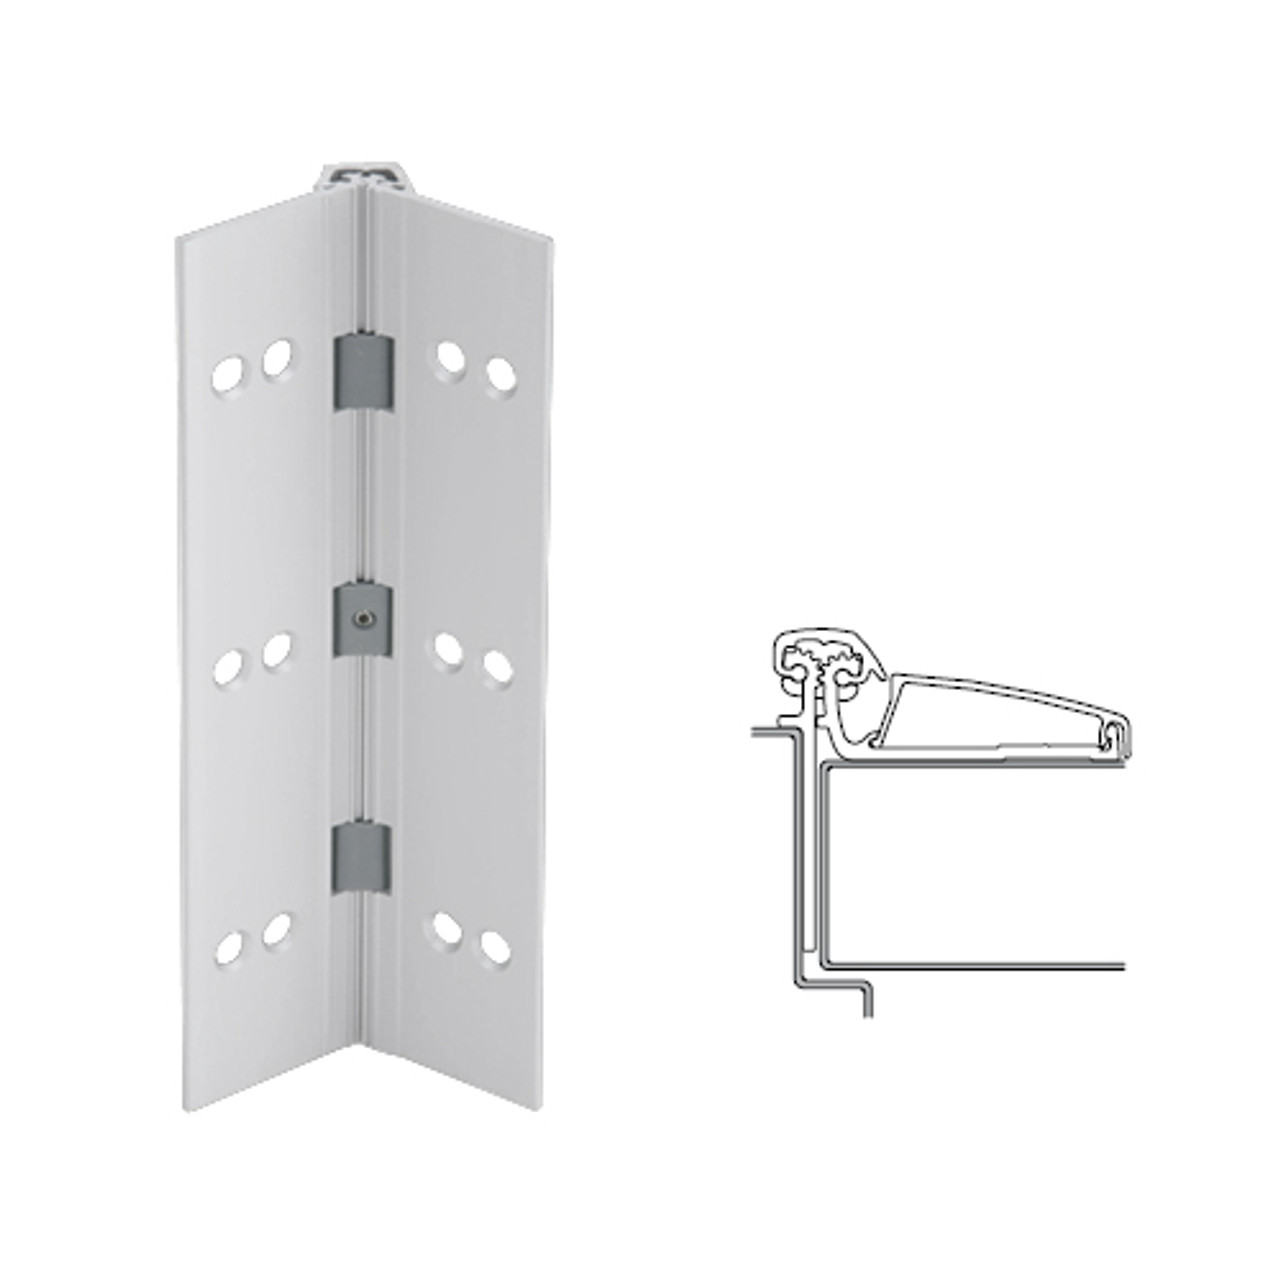 046XY-US28-83-SECWDHM IVES Adjustable Half Surface Continuous Geared Hinges with Security Screws - Hex Pin Drive in Satin Aluminum